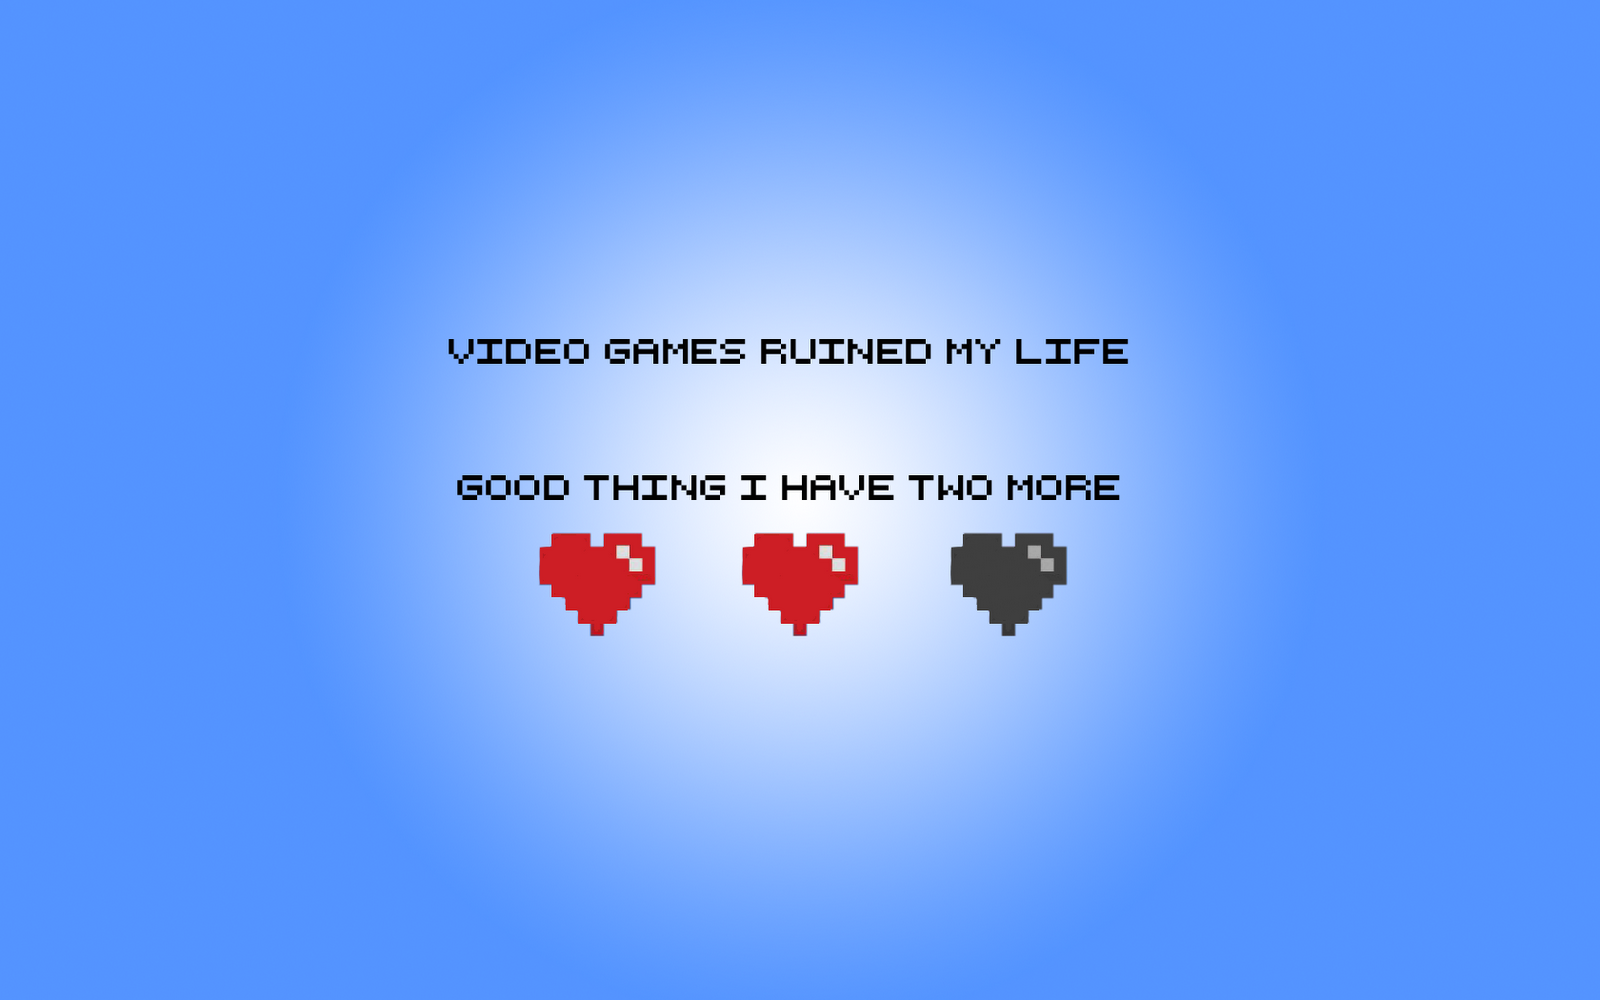 http://2.bp.blogspot.com/-BSf9YNB_CXA/T0wMVbi5MaI/AAAAAAAAAvM/hoqEfYzO5Dk/s1600/Funny_Video_Game_Addiction_Message_Minimal_Wallpaper-gWb.png